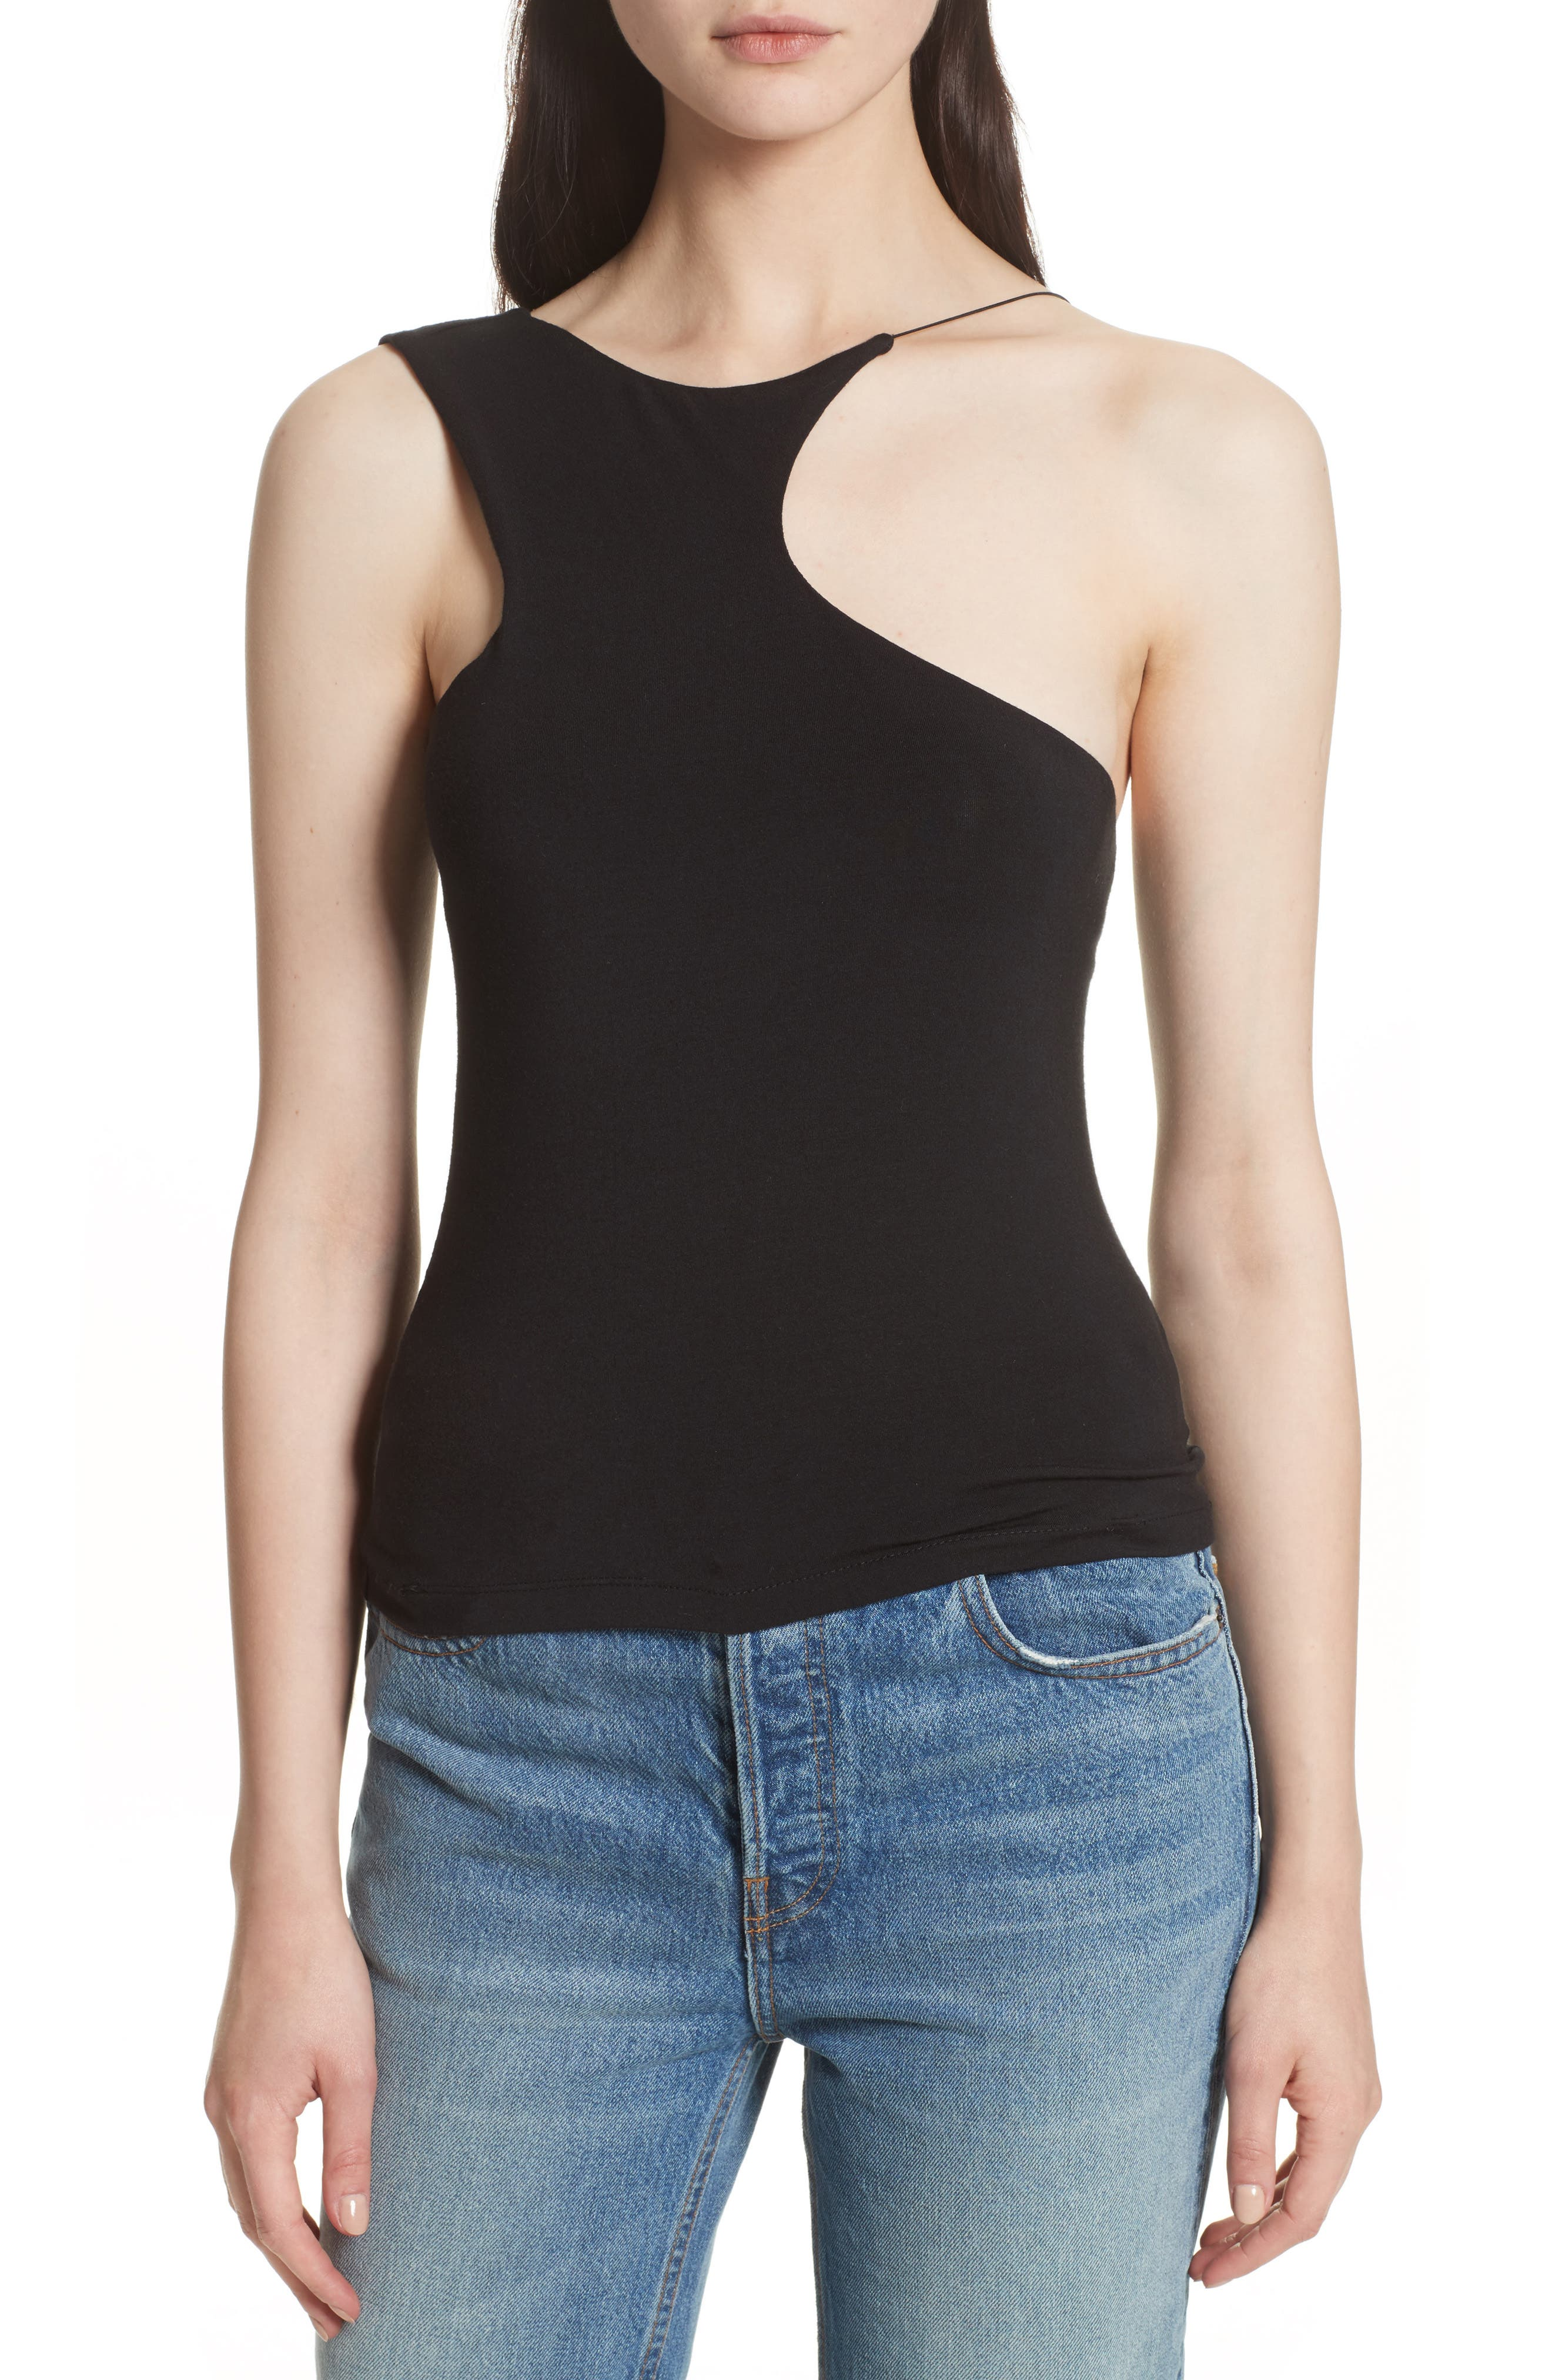 Alternate Image 1 Selected - T by Alexander Wang Asymmetrical Cutout Stretch Jersey Top